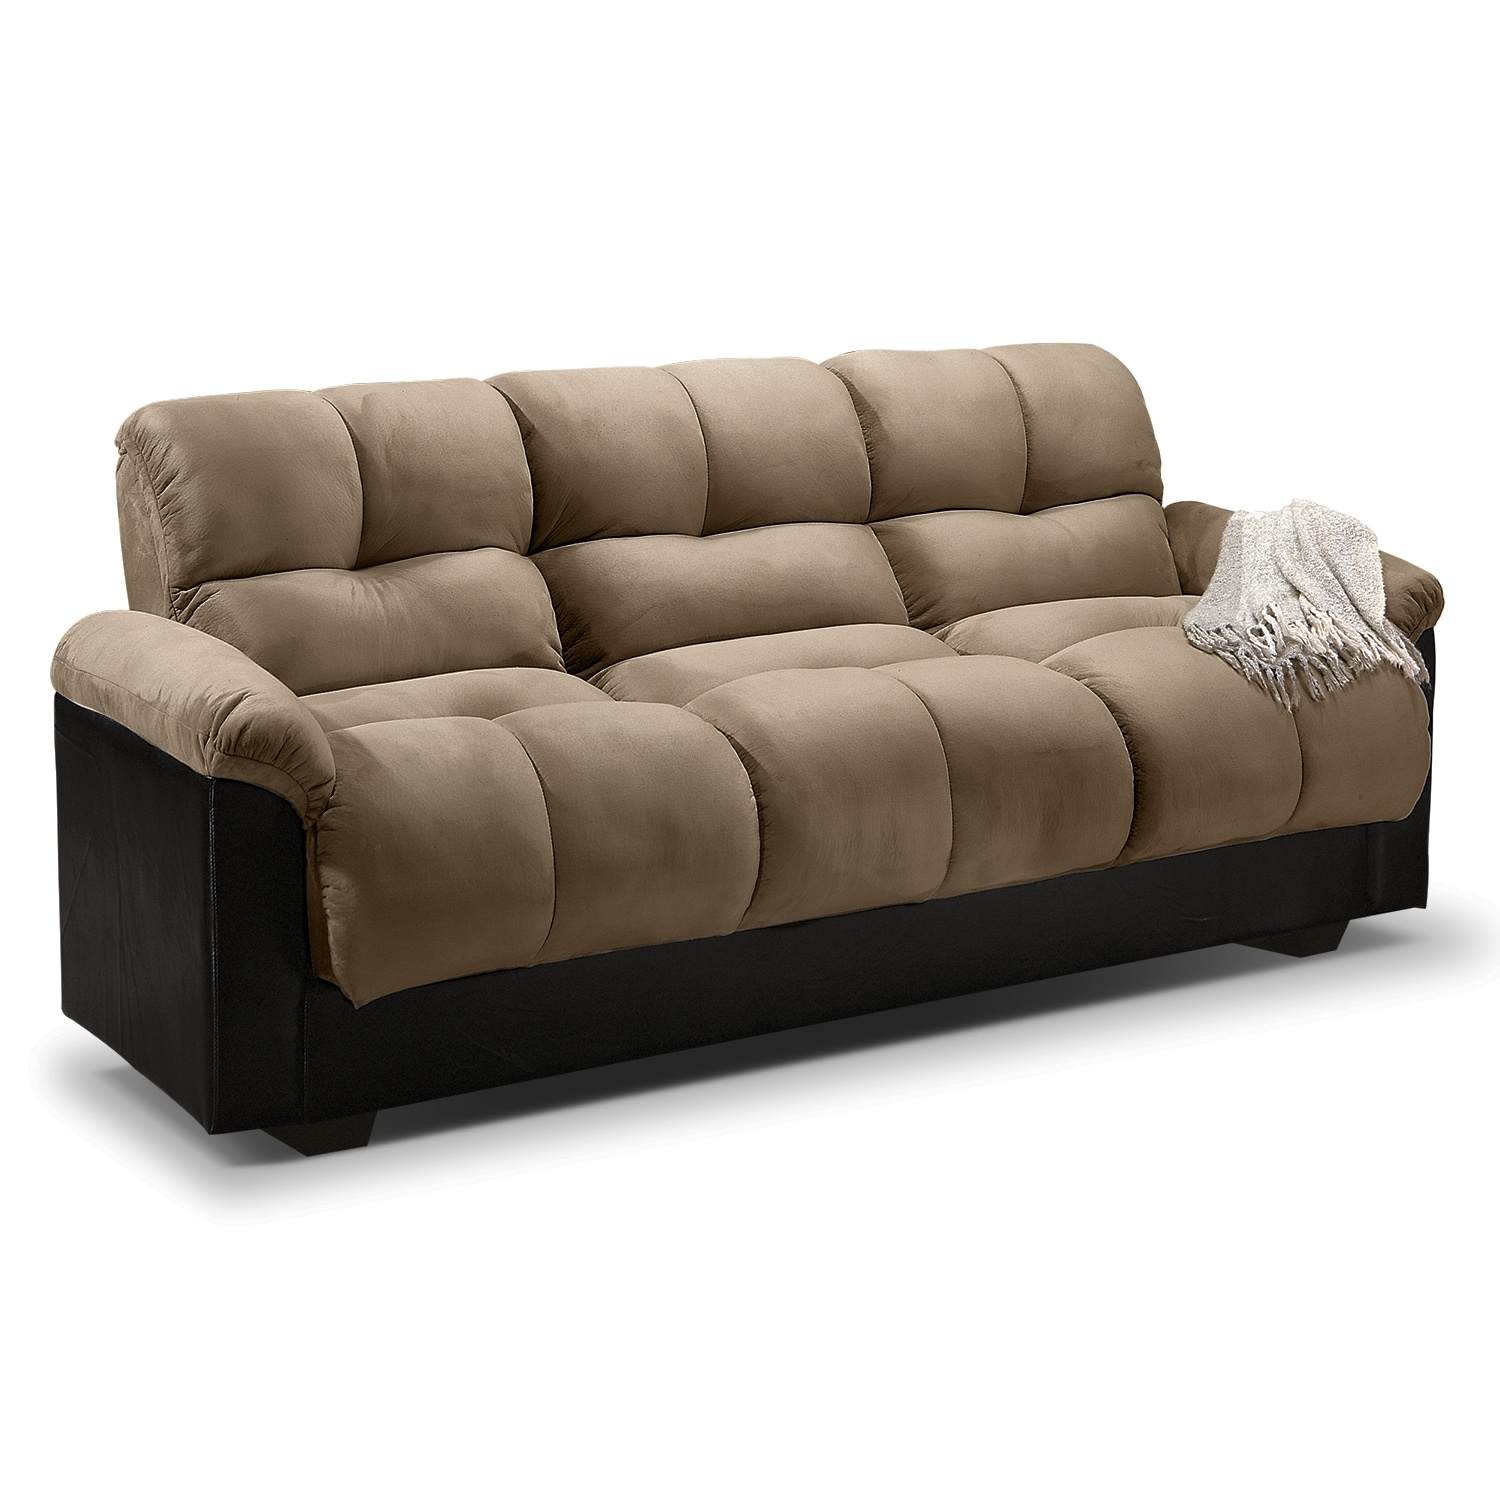 sleeper sofa bed best mattress reviews crawford futon with storage furniture